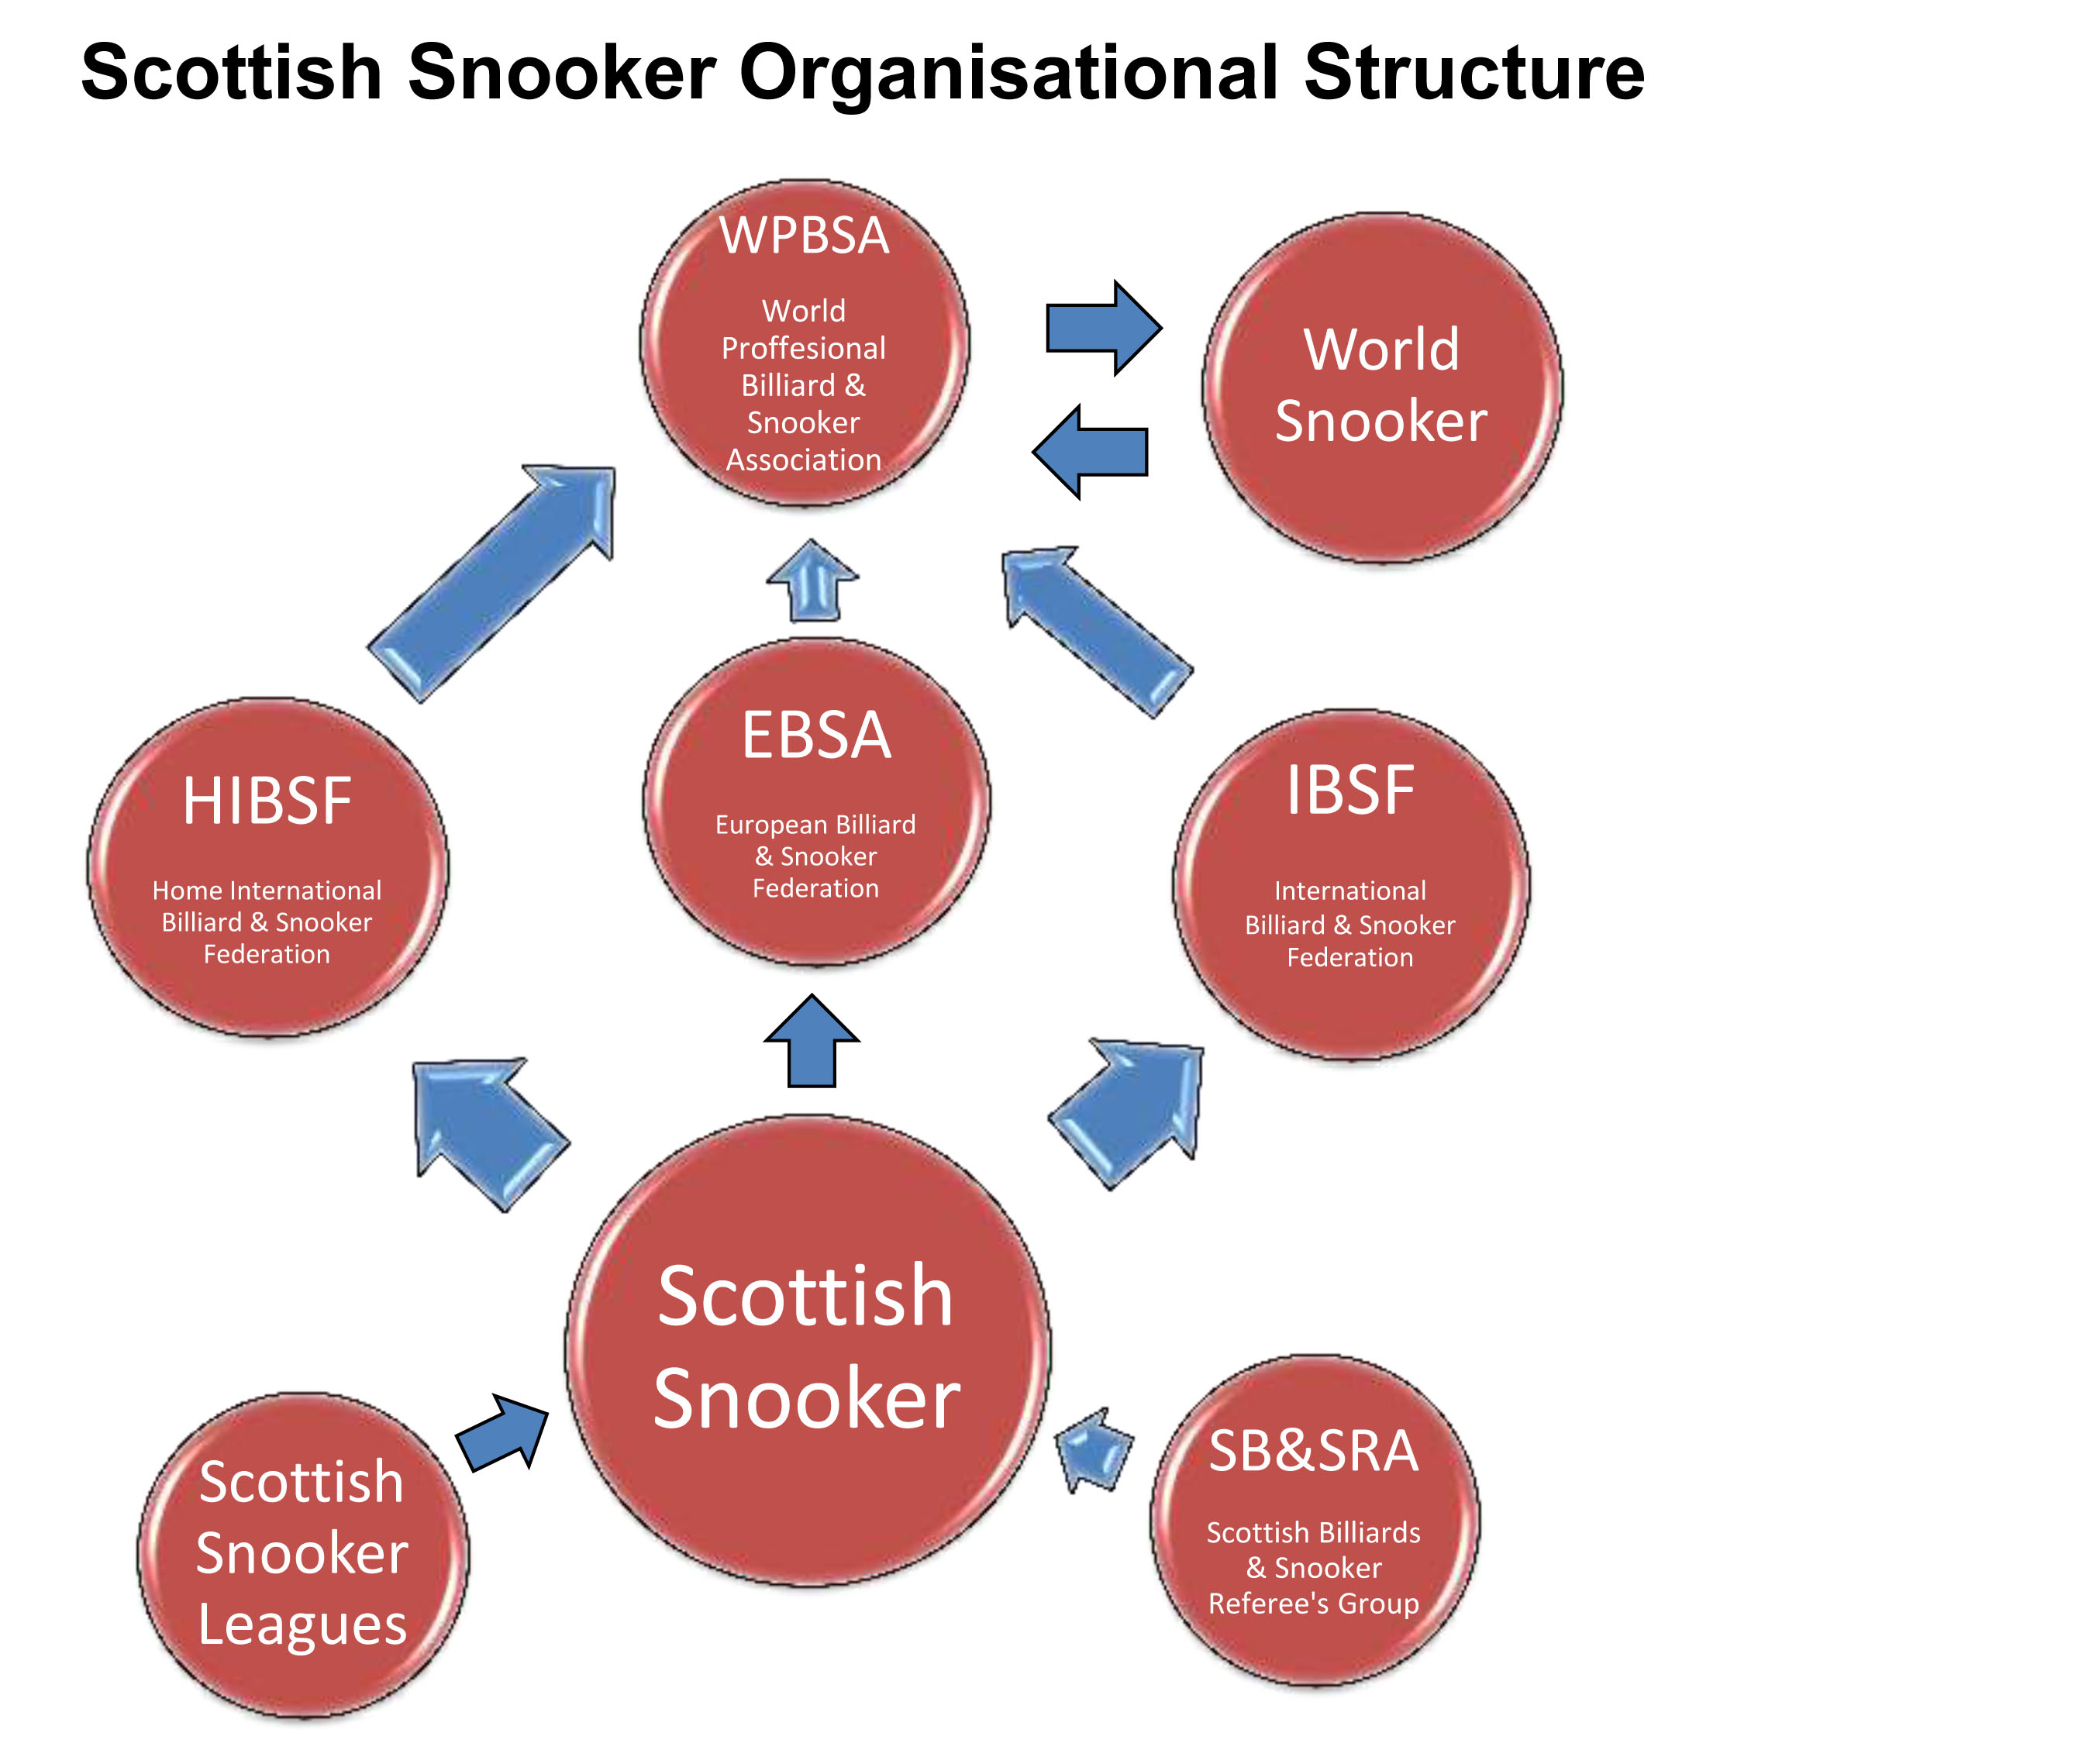 Scottish Snooker Organisational Structure